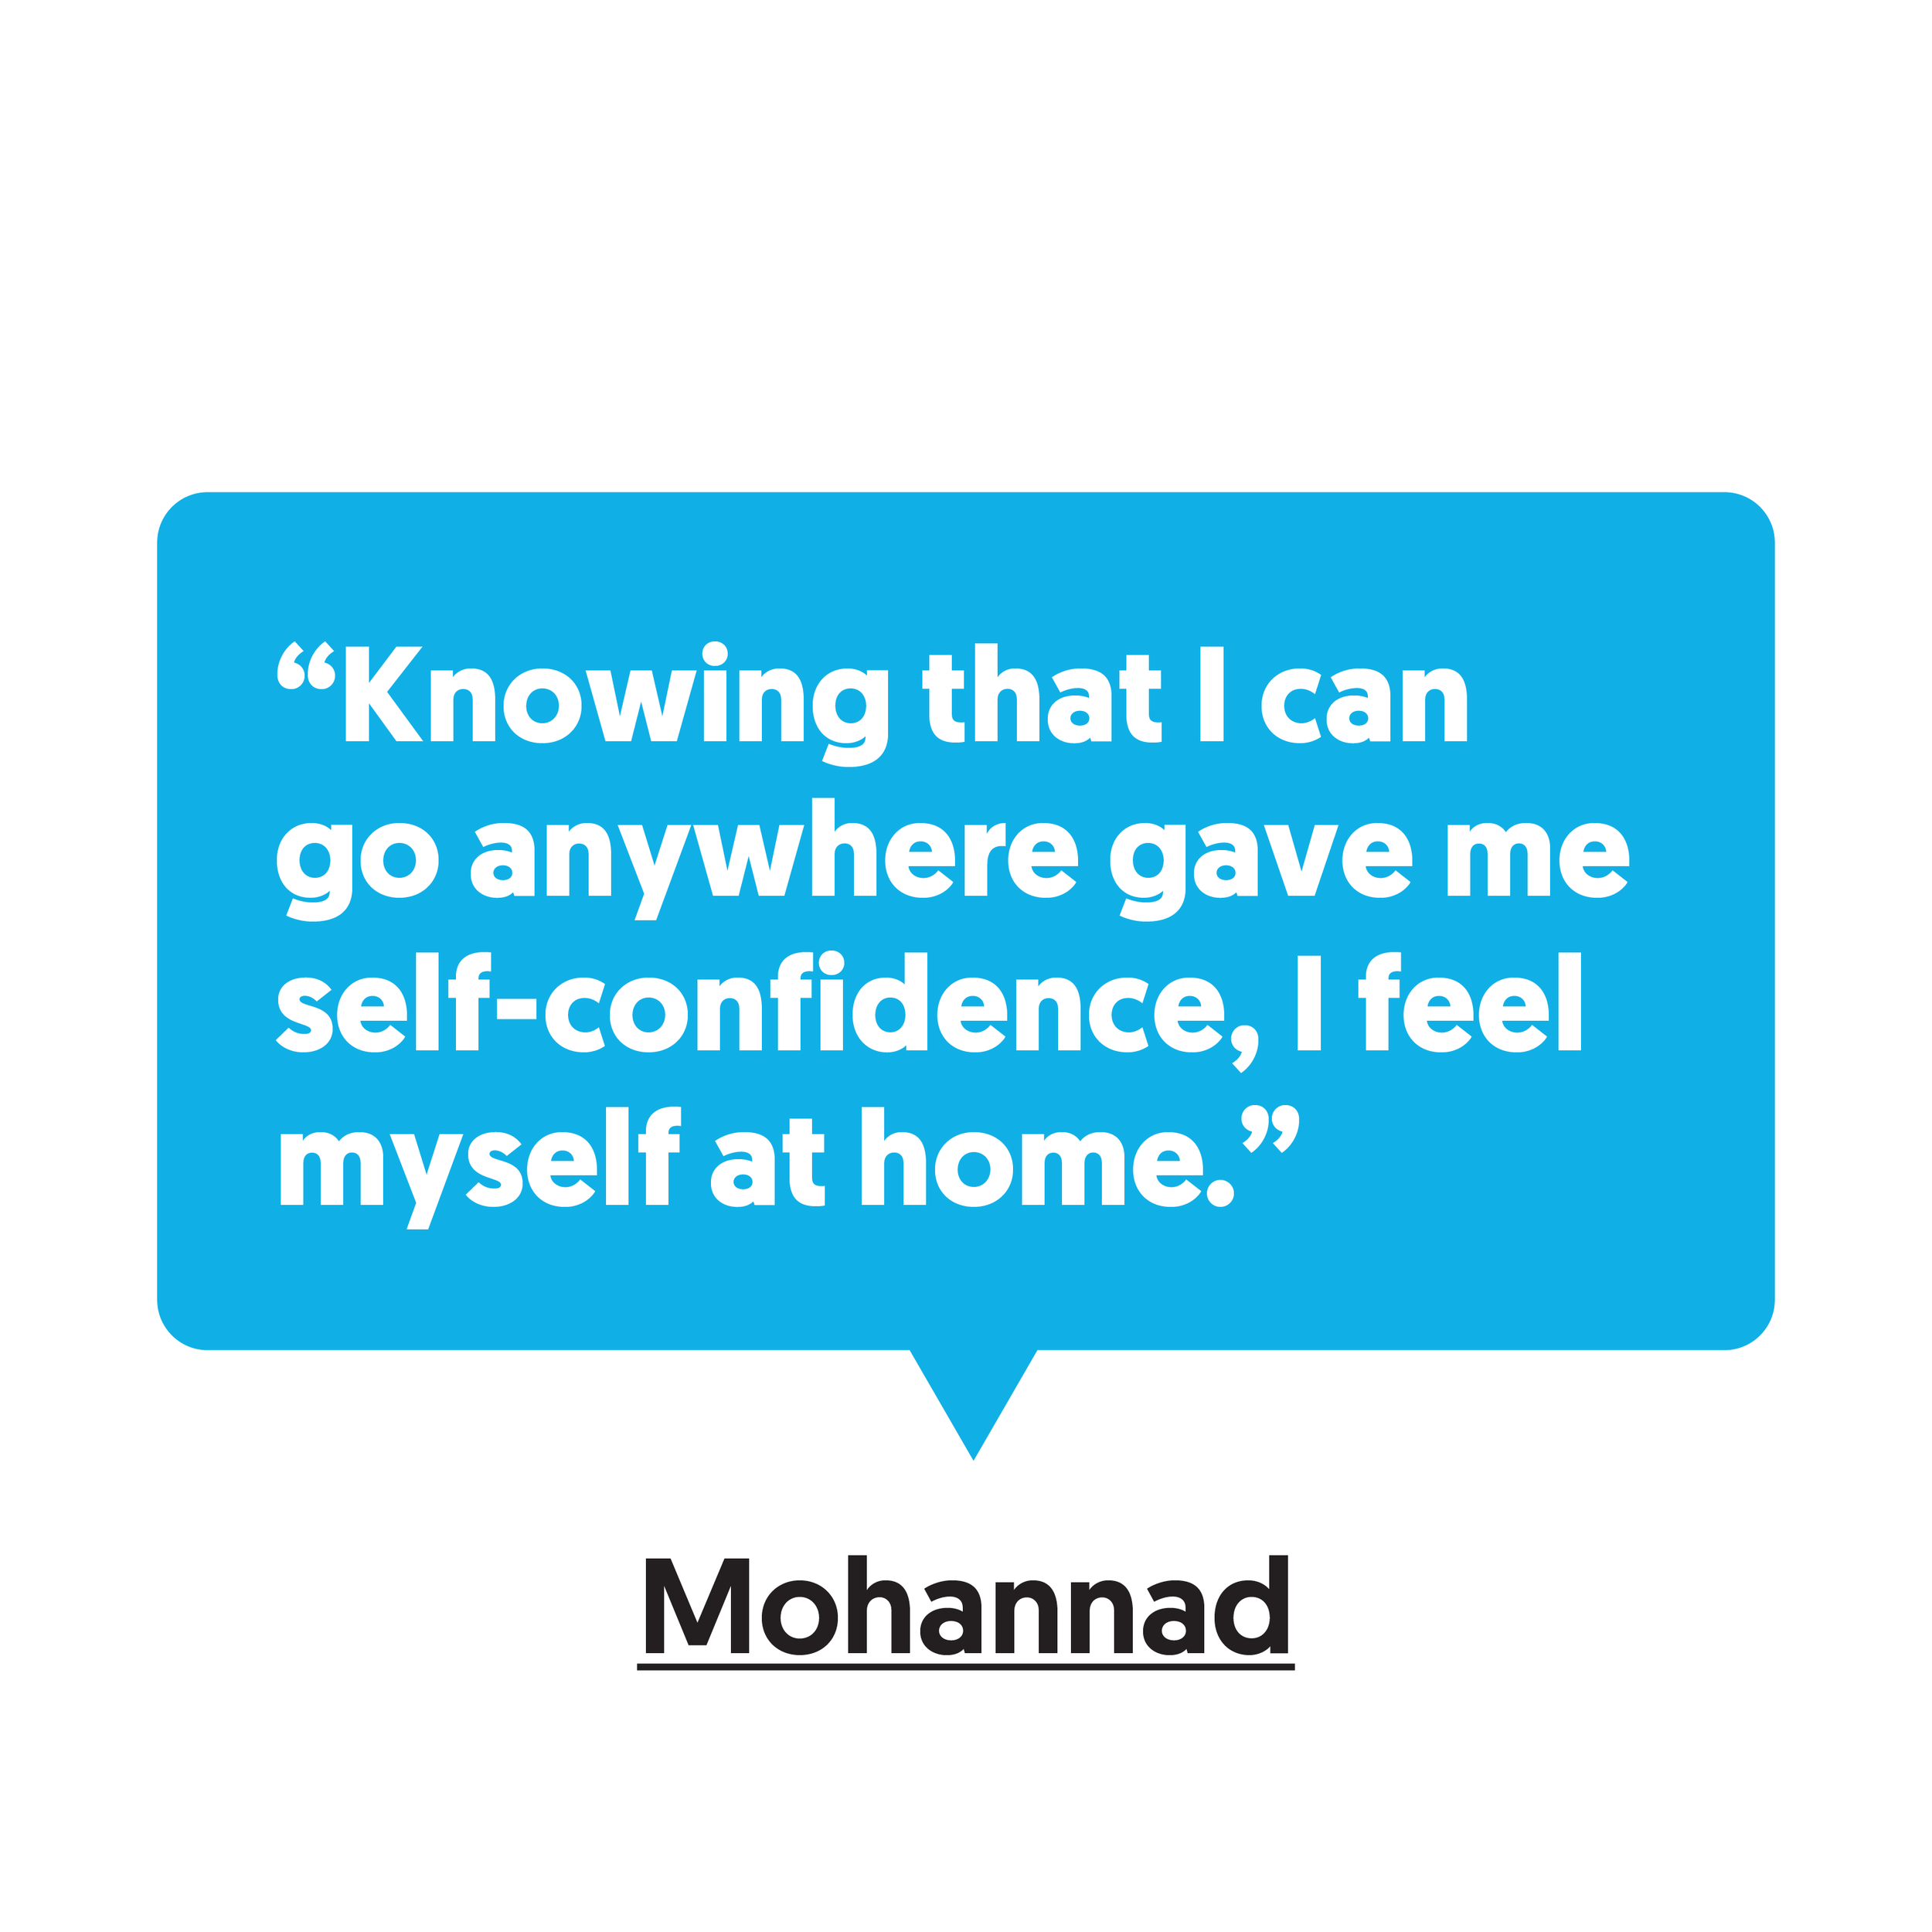 Quote_Mohannad1.png